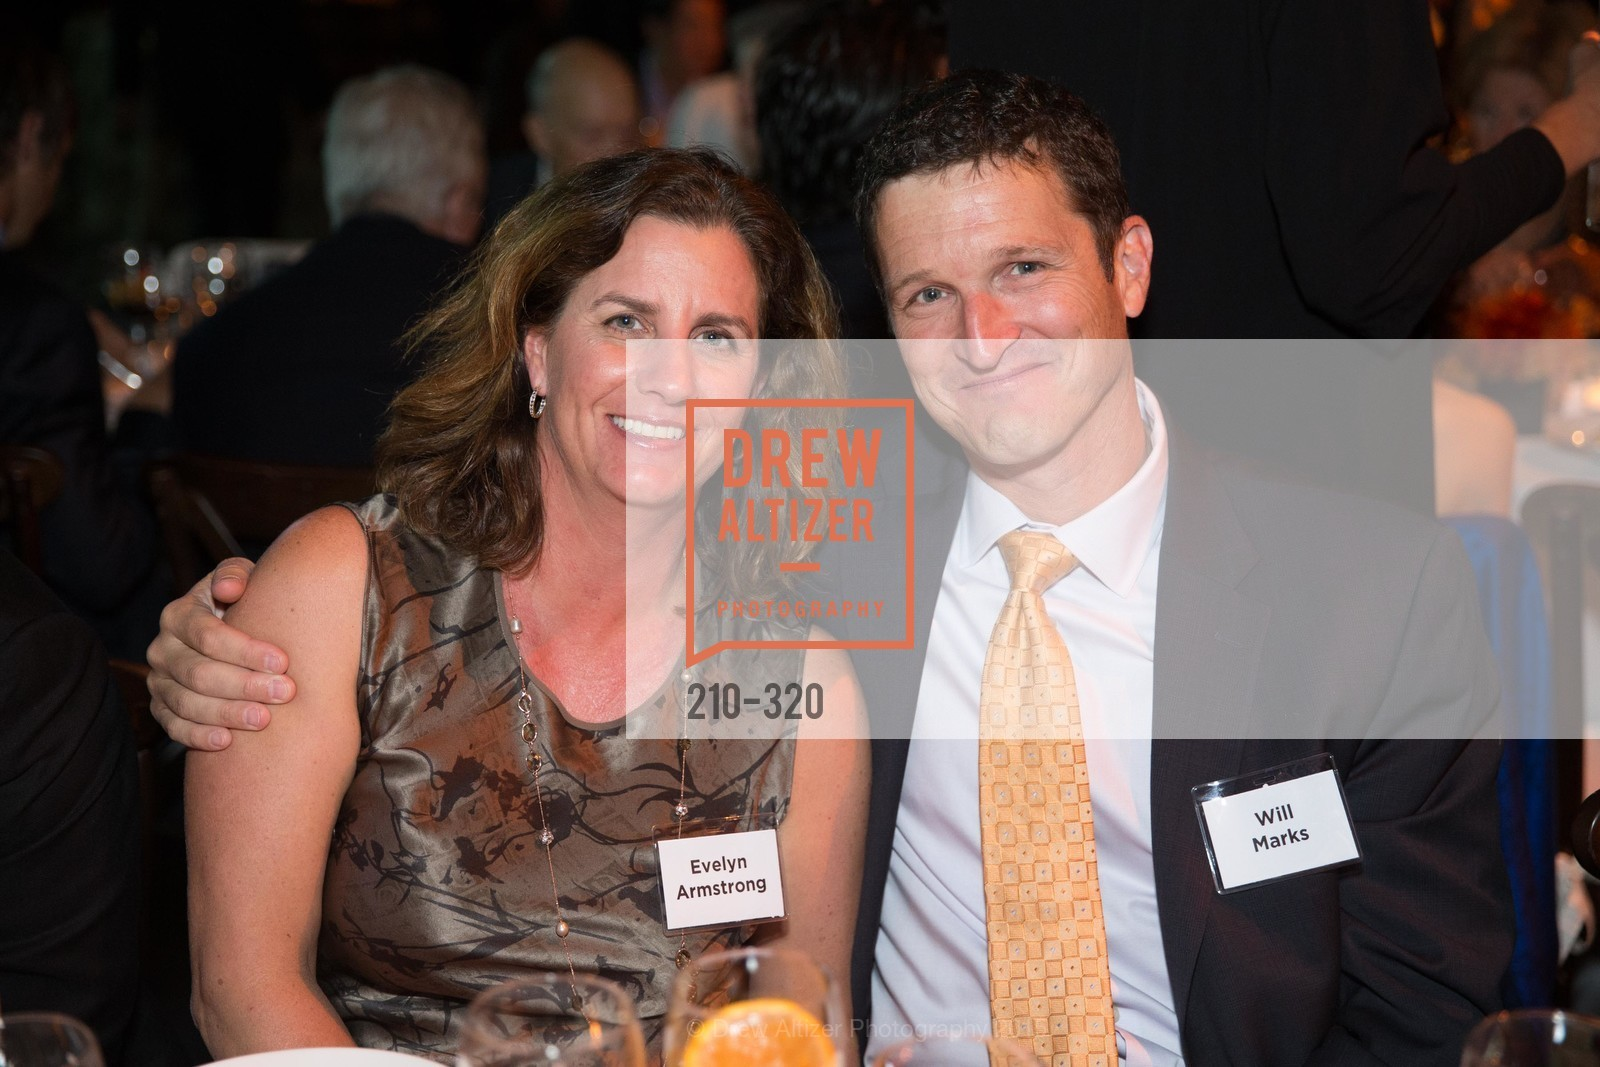 Evelyn Armstrong, Will Marks, SF - Marin Food Bank Presents ONE BIG TABLE, SF- Marin Food Bank. 900 Pennsylvania Ave, September 26th, 2015,Drew Altizer, Drew Altizer Photography, full-service agency, private events, San Francisco photographer, photographer california